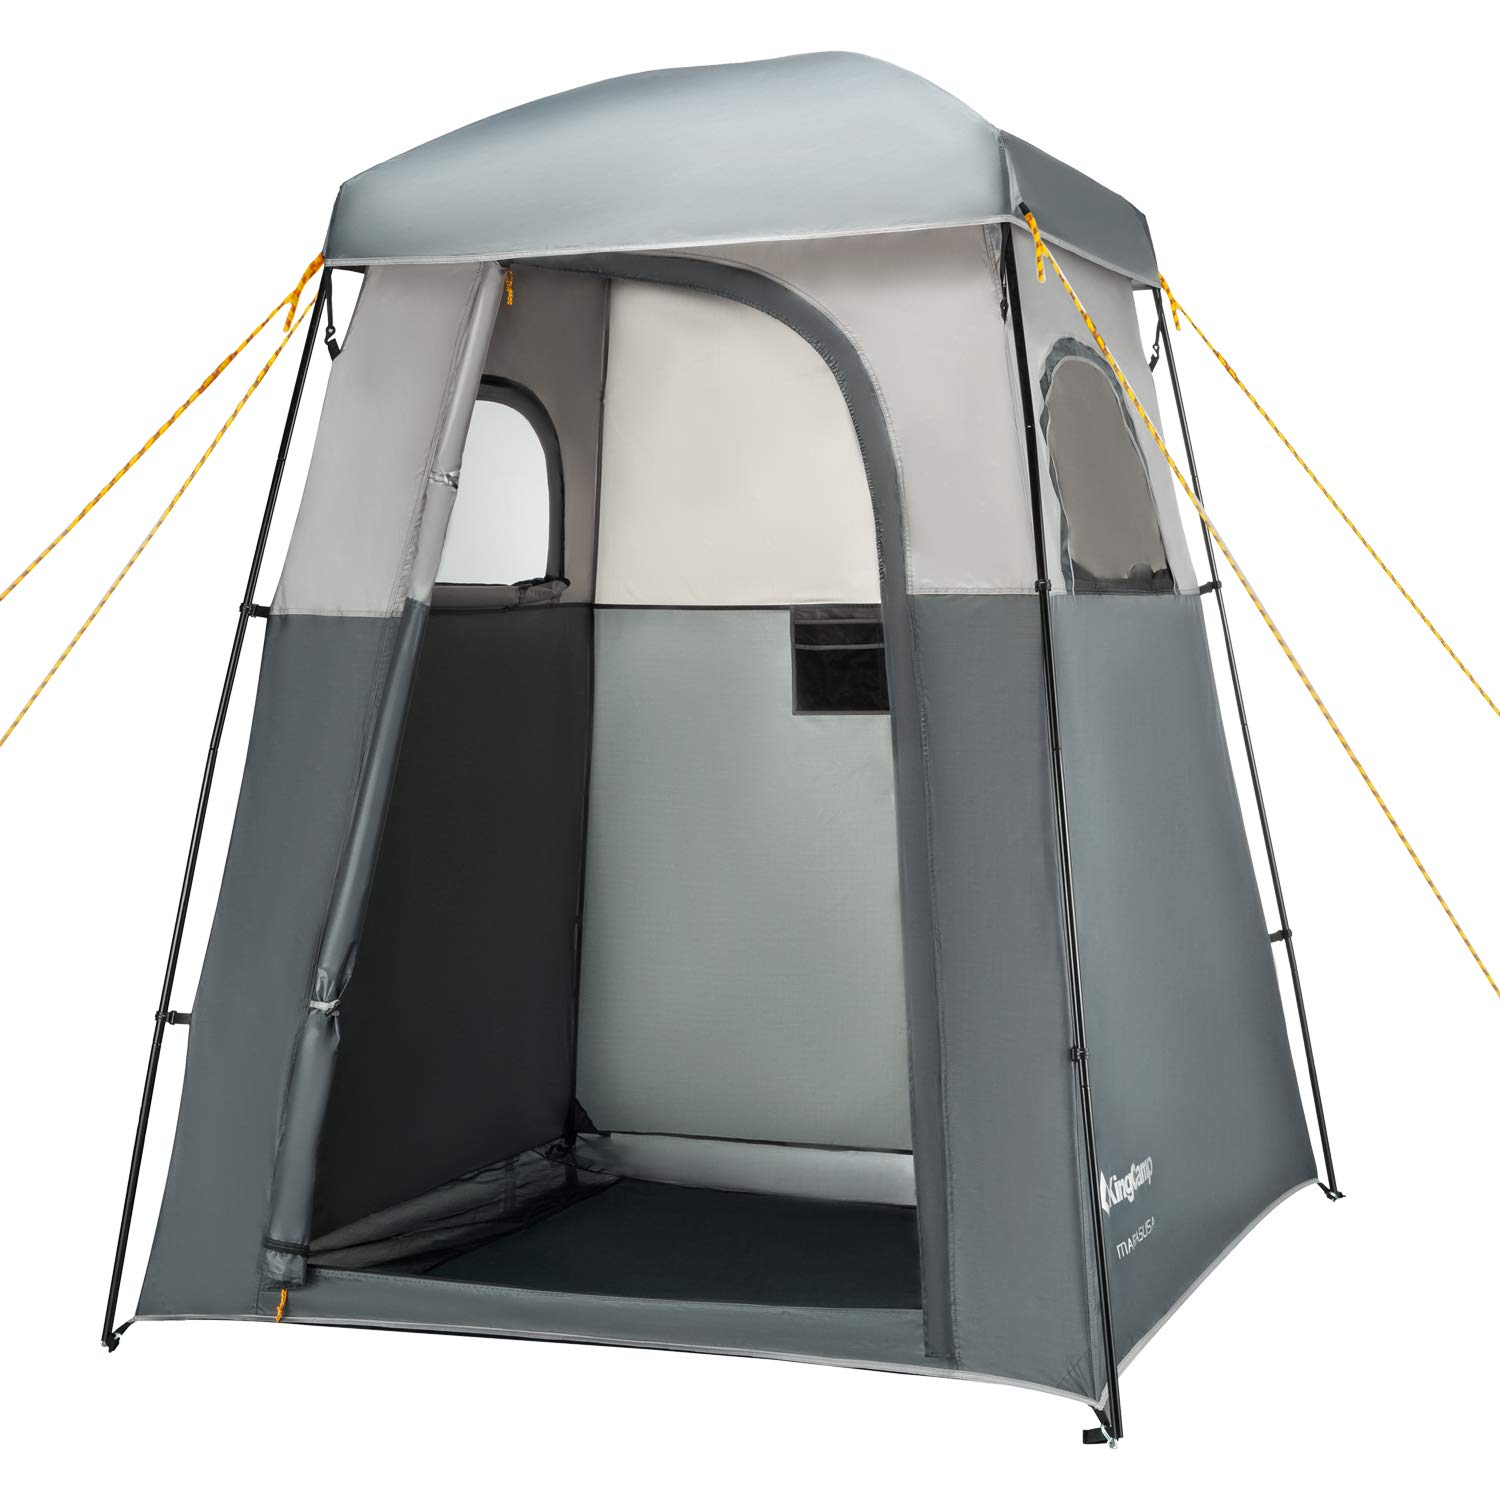 KingCamp Oversize Outdoor Easy Up Portable Dressing Changing Room Shower Privacy Shelter Tent (Grey Advanced) by KingCamp